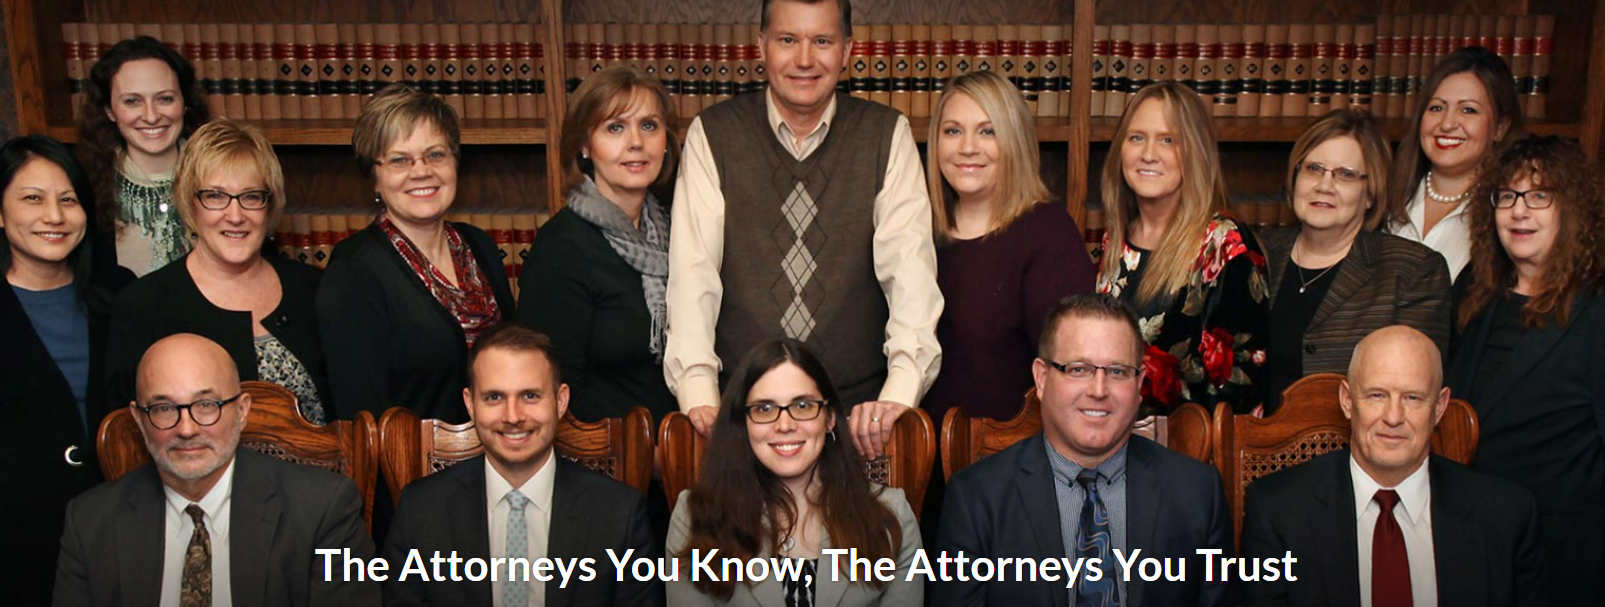 Barber, Kaper, Stamm, McWatters & Whitlock reviews | Legal Services at 124 N Fulton St - Wauseon OH